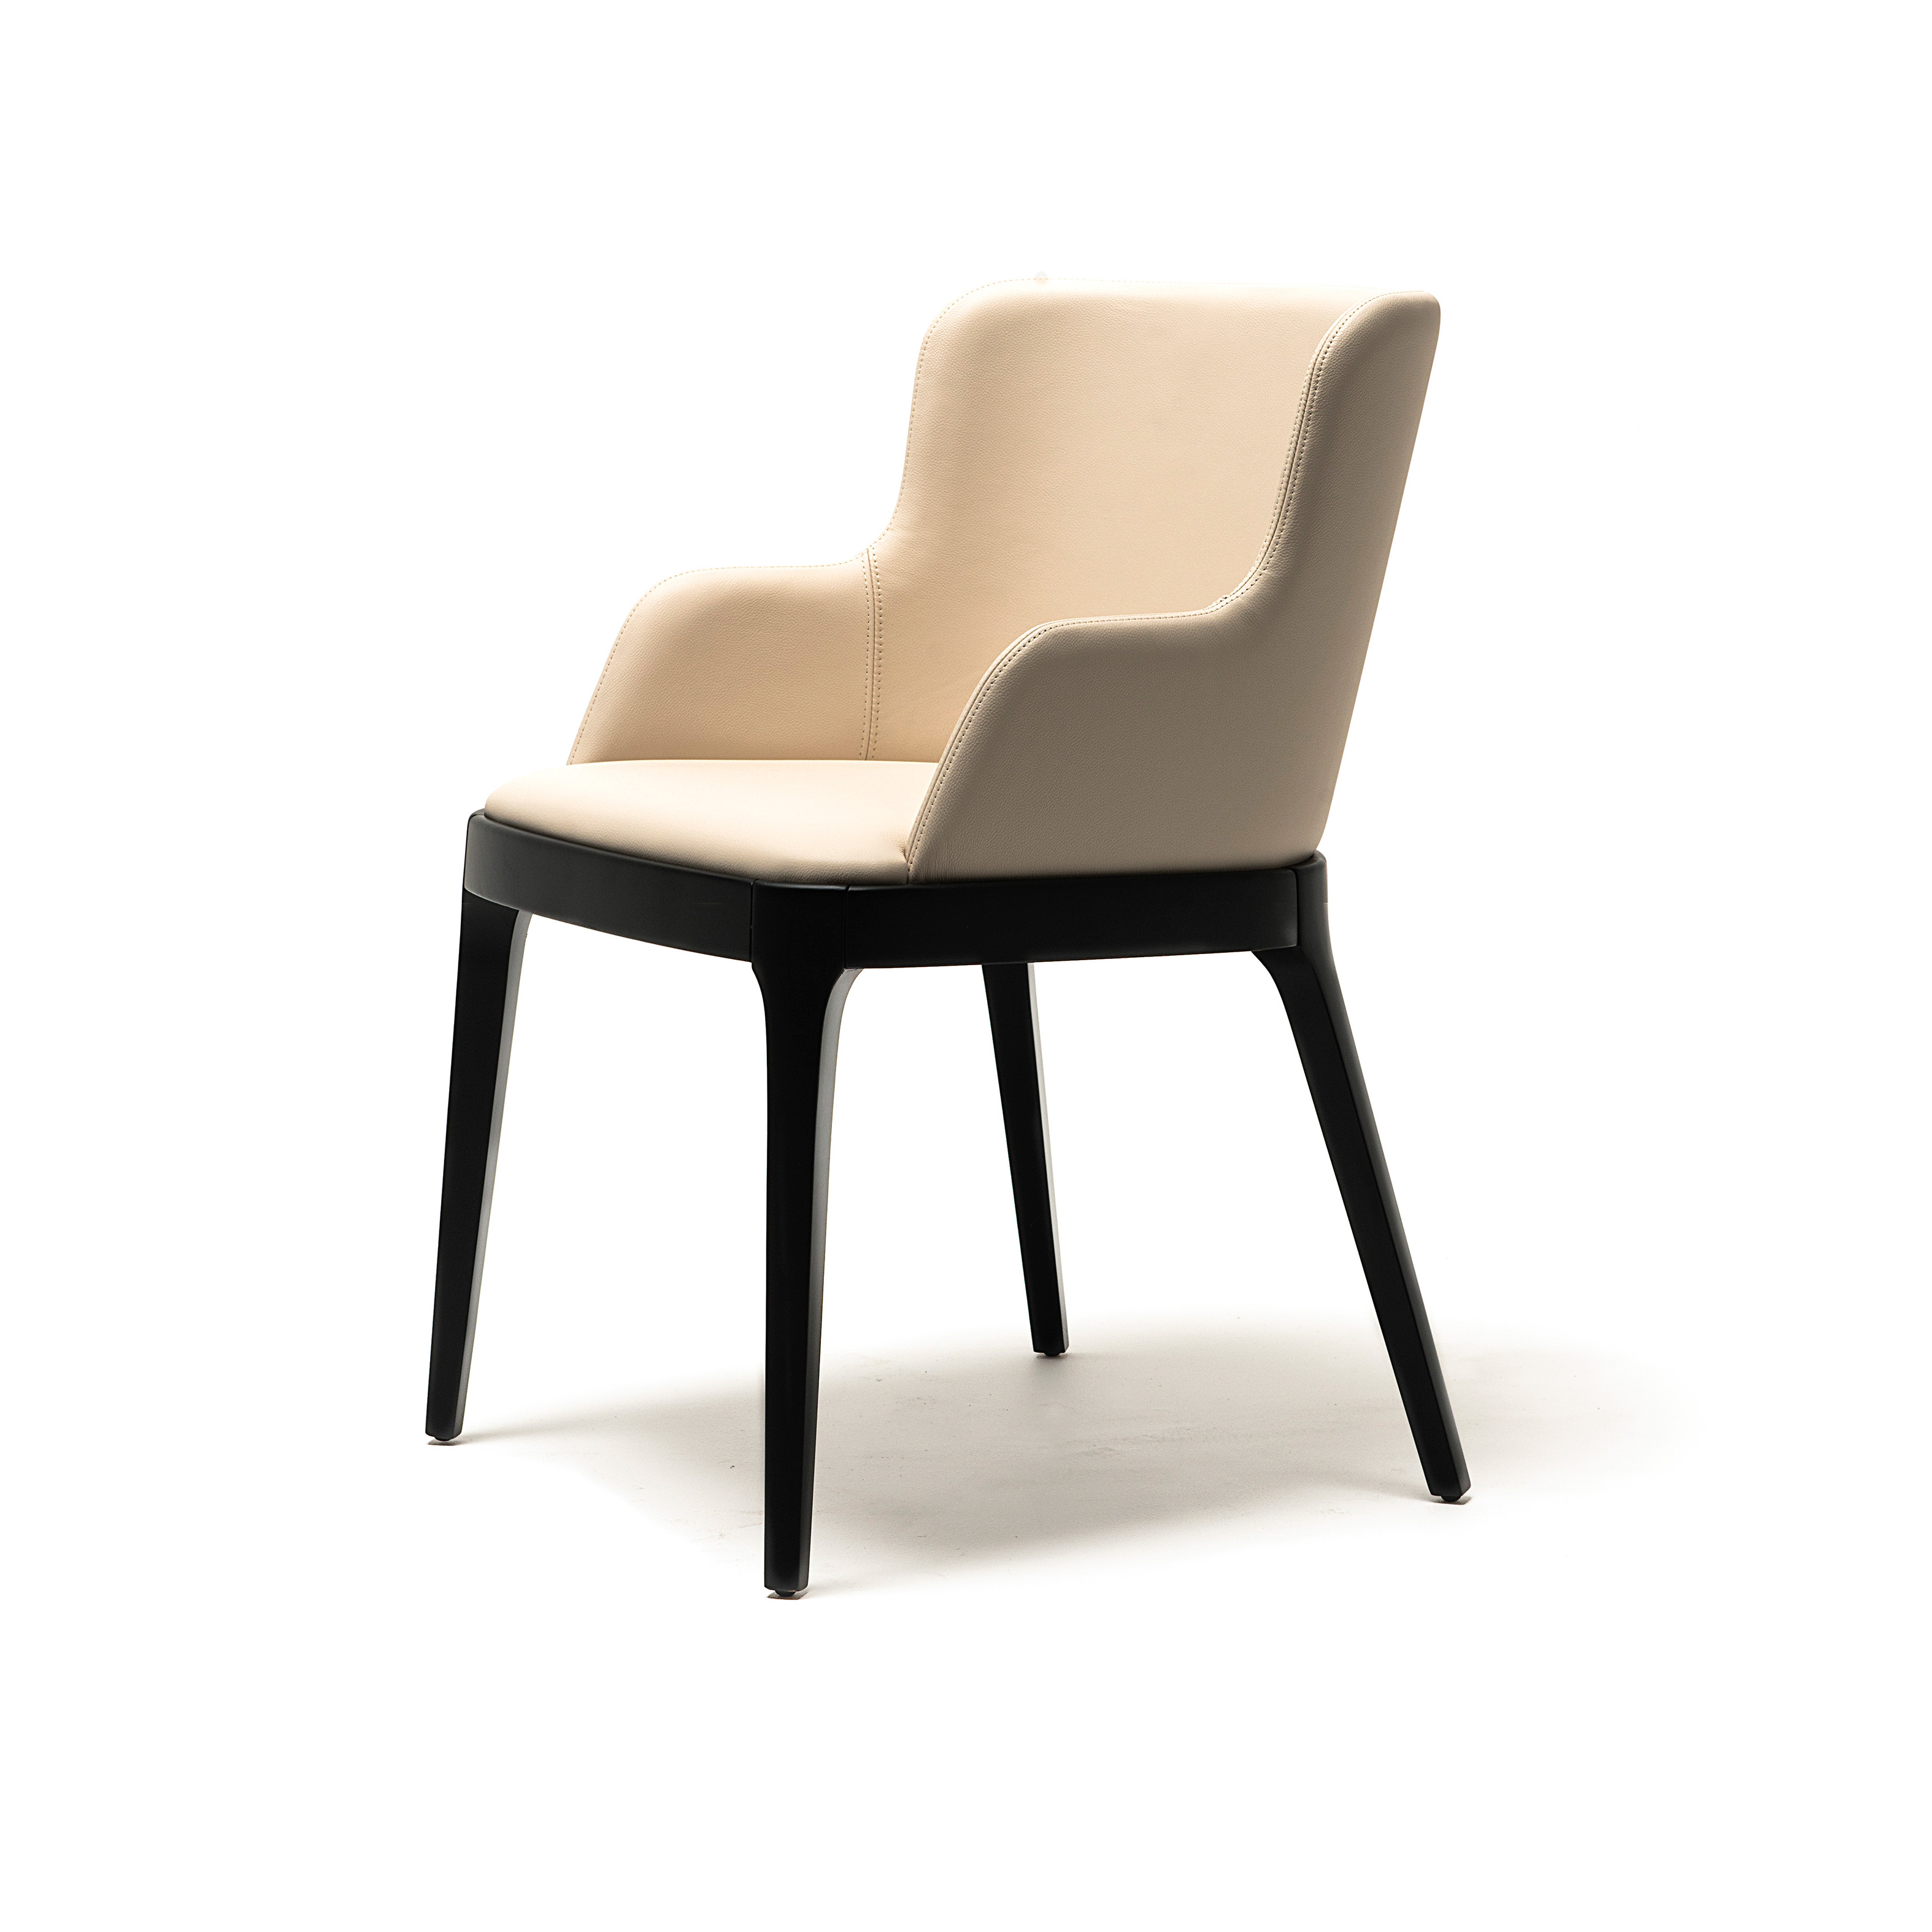 Modern Chairs Top 5 Luxury Fabric Brands Exhibiting At: Contemporary Italian Magda Armchair